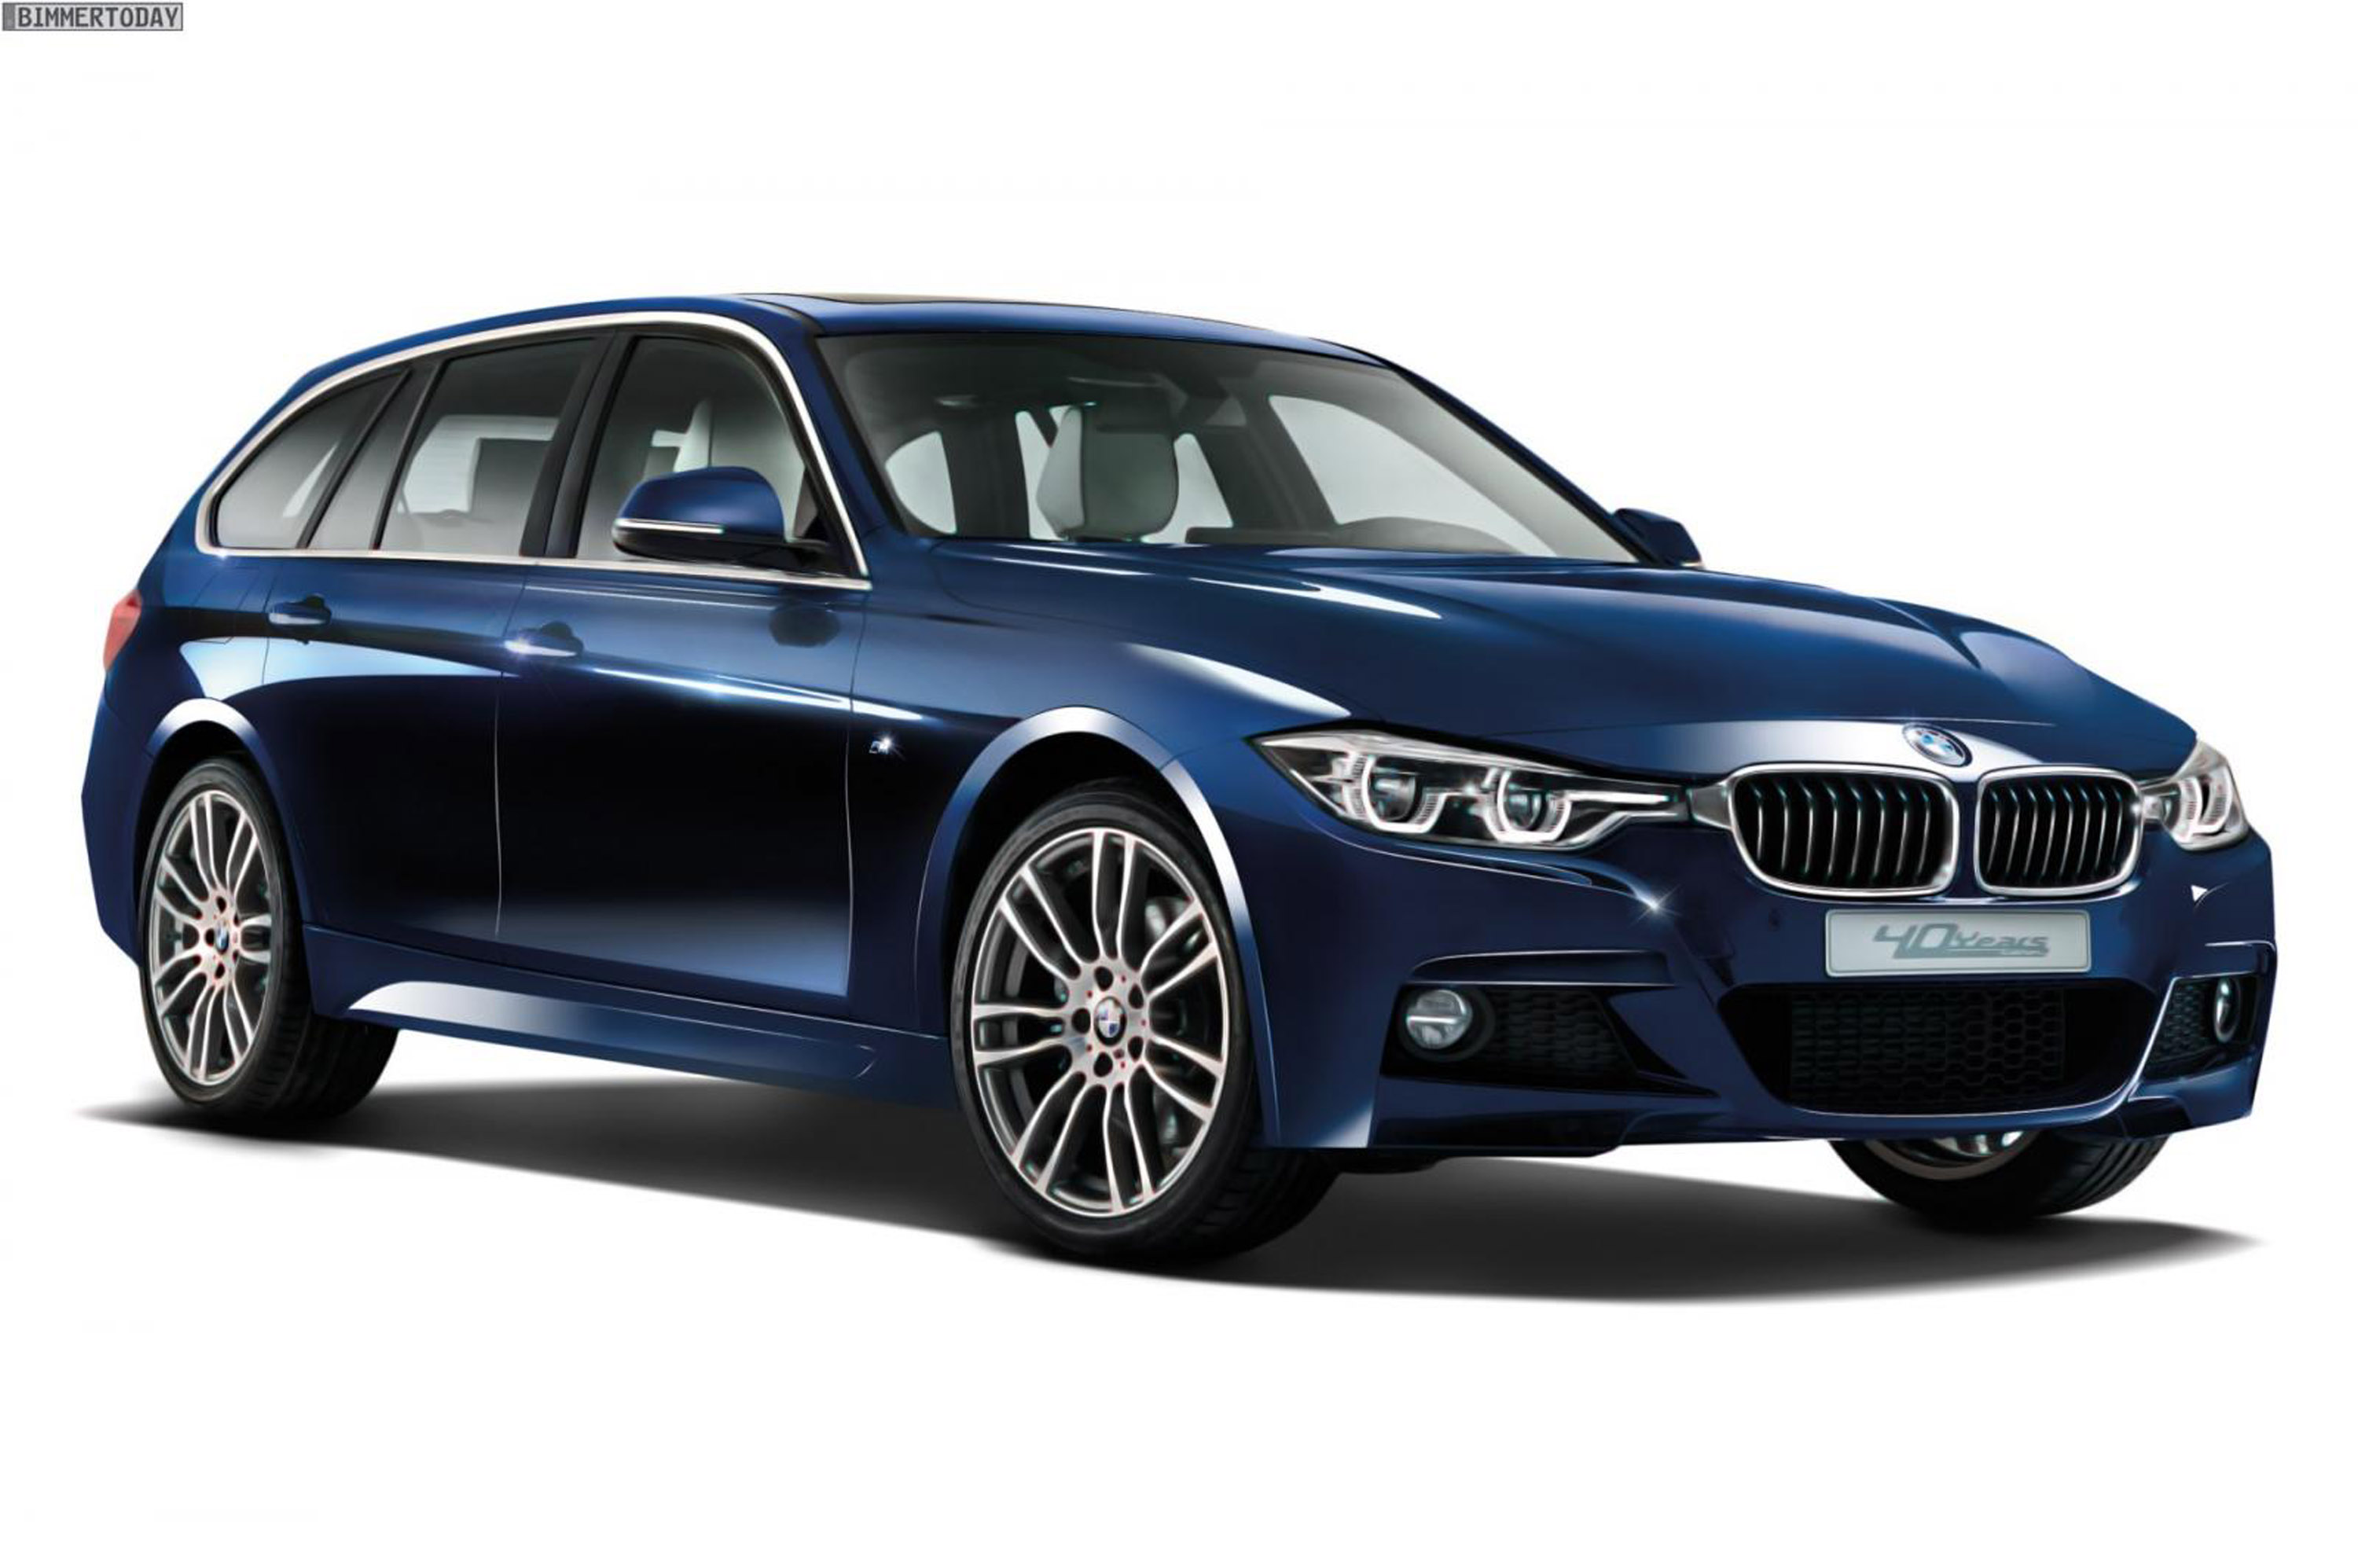 bmw releases limited 320d xdrive touring model. Black Bedroom Furniture Sets. Home Design Ideas